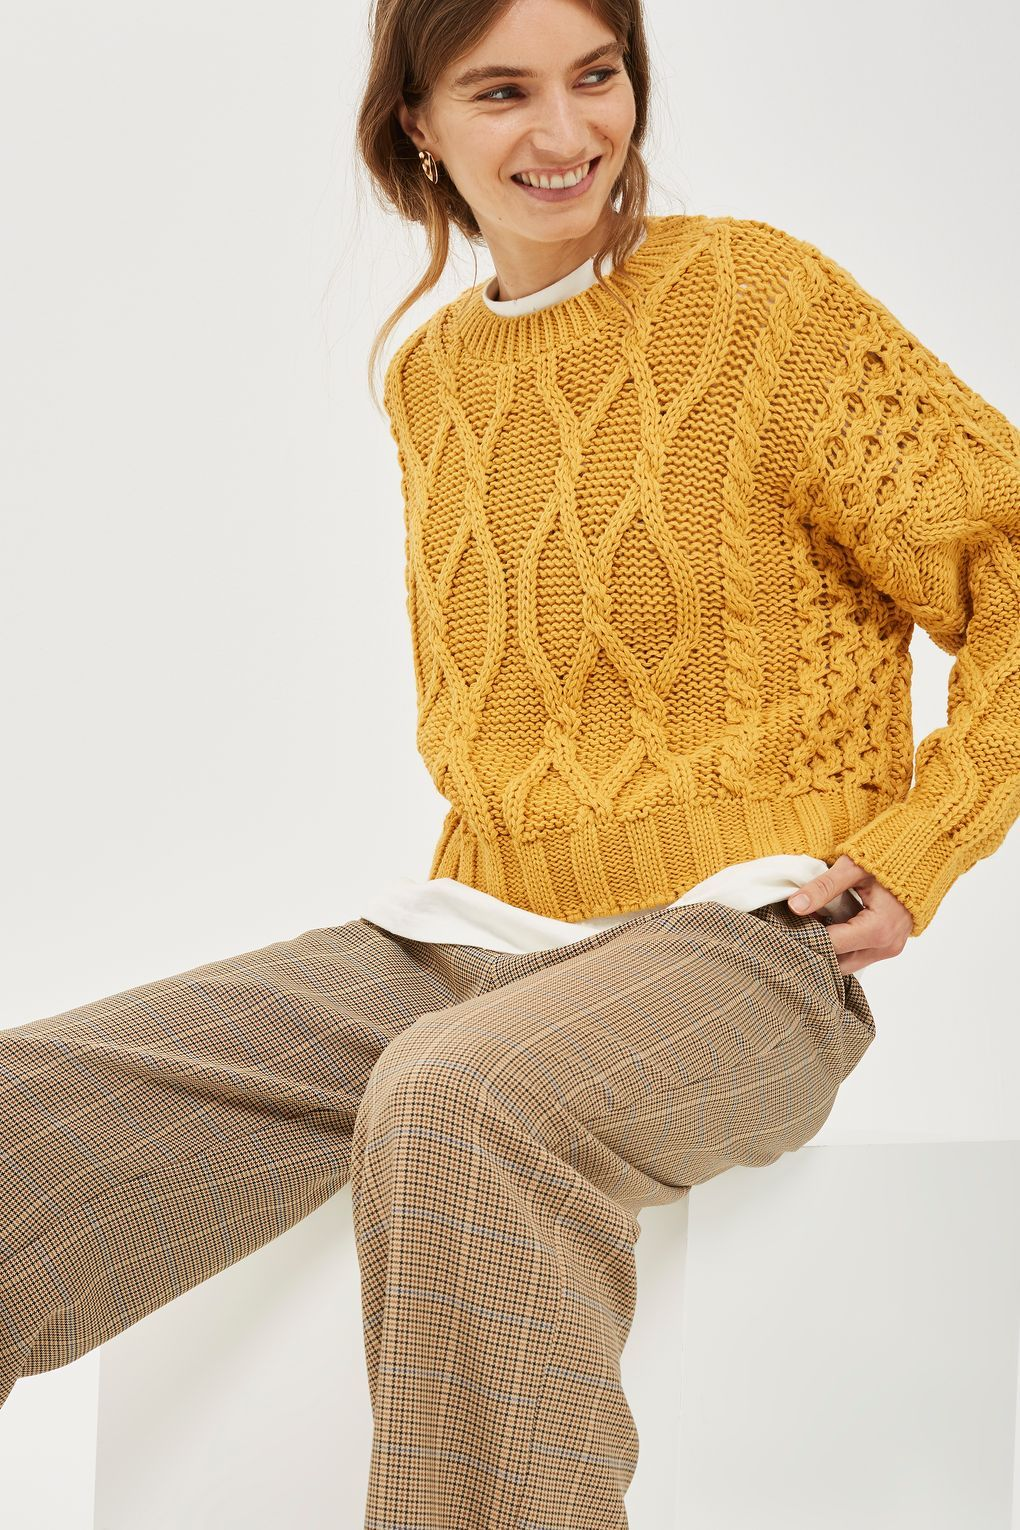 00960d8bbde Cropped Cable Sweater | Products I Love | Cable sweater, Cable knit ...